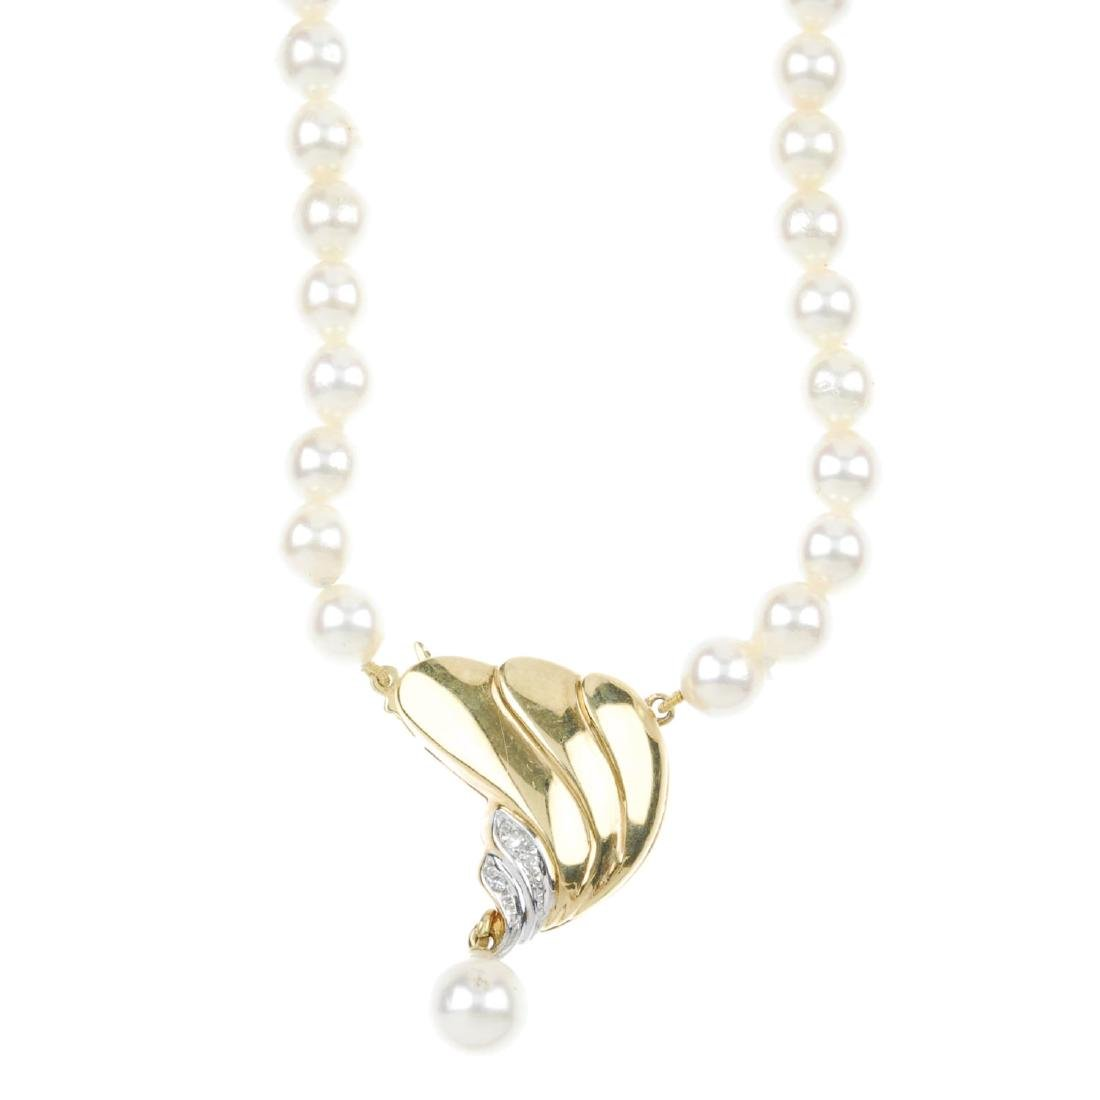 A cultured pearl necklace with diamond-set clasp. The